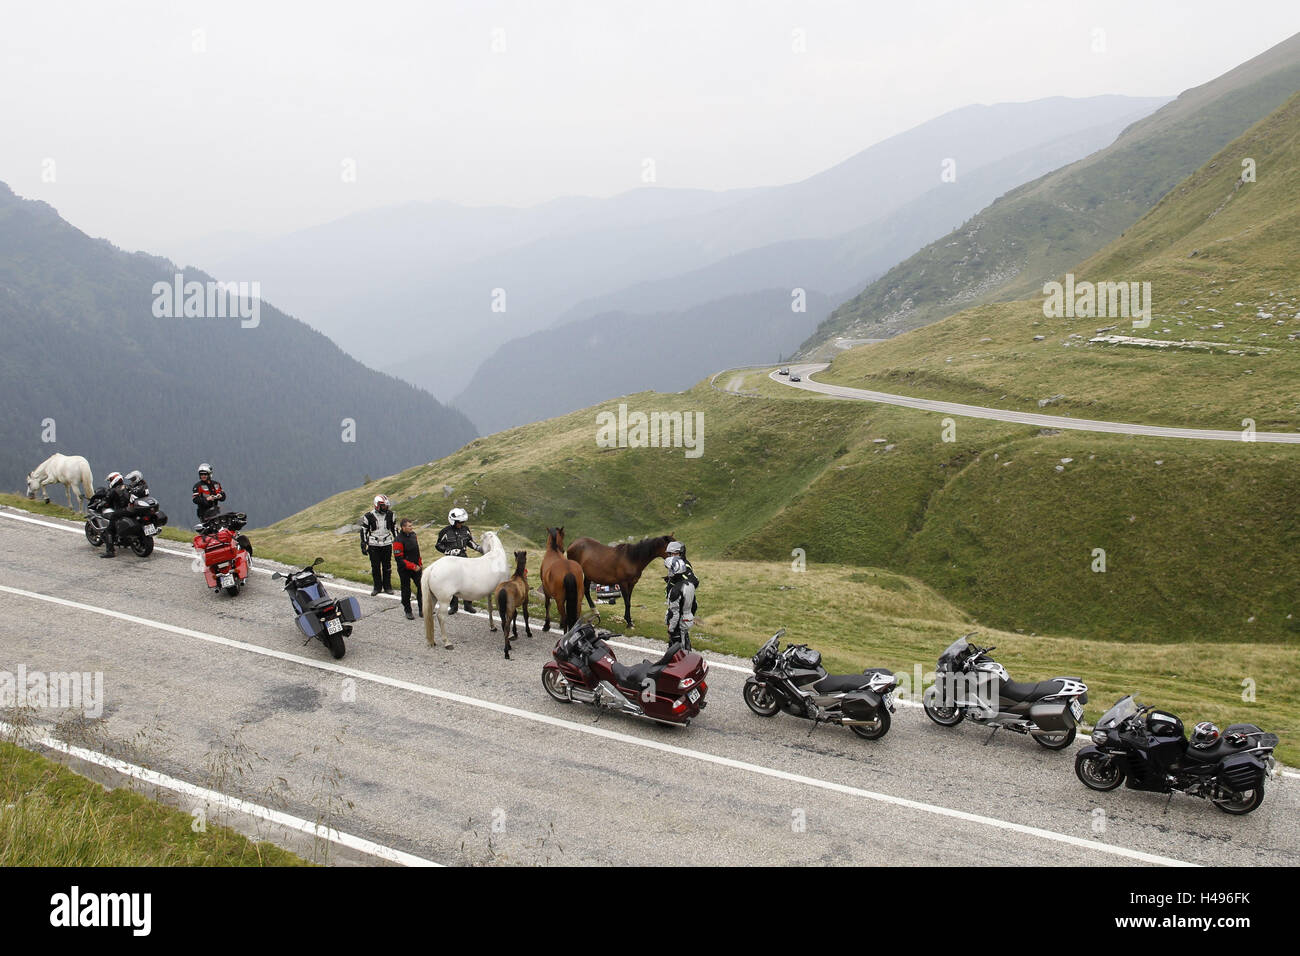 Motorcycle rest, alp ambience, country road, horses on pavement, - Stock Image